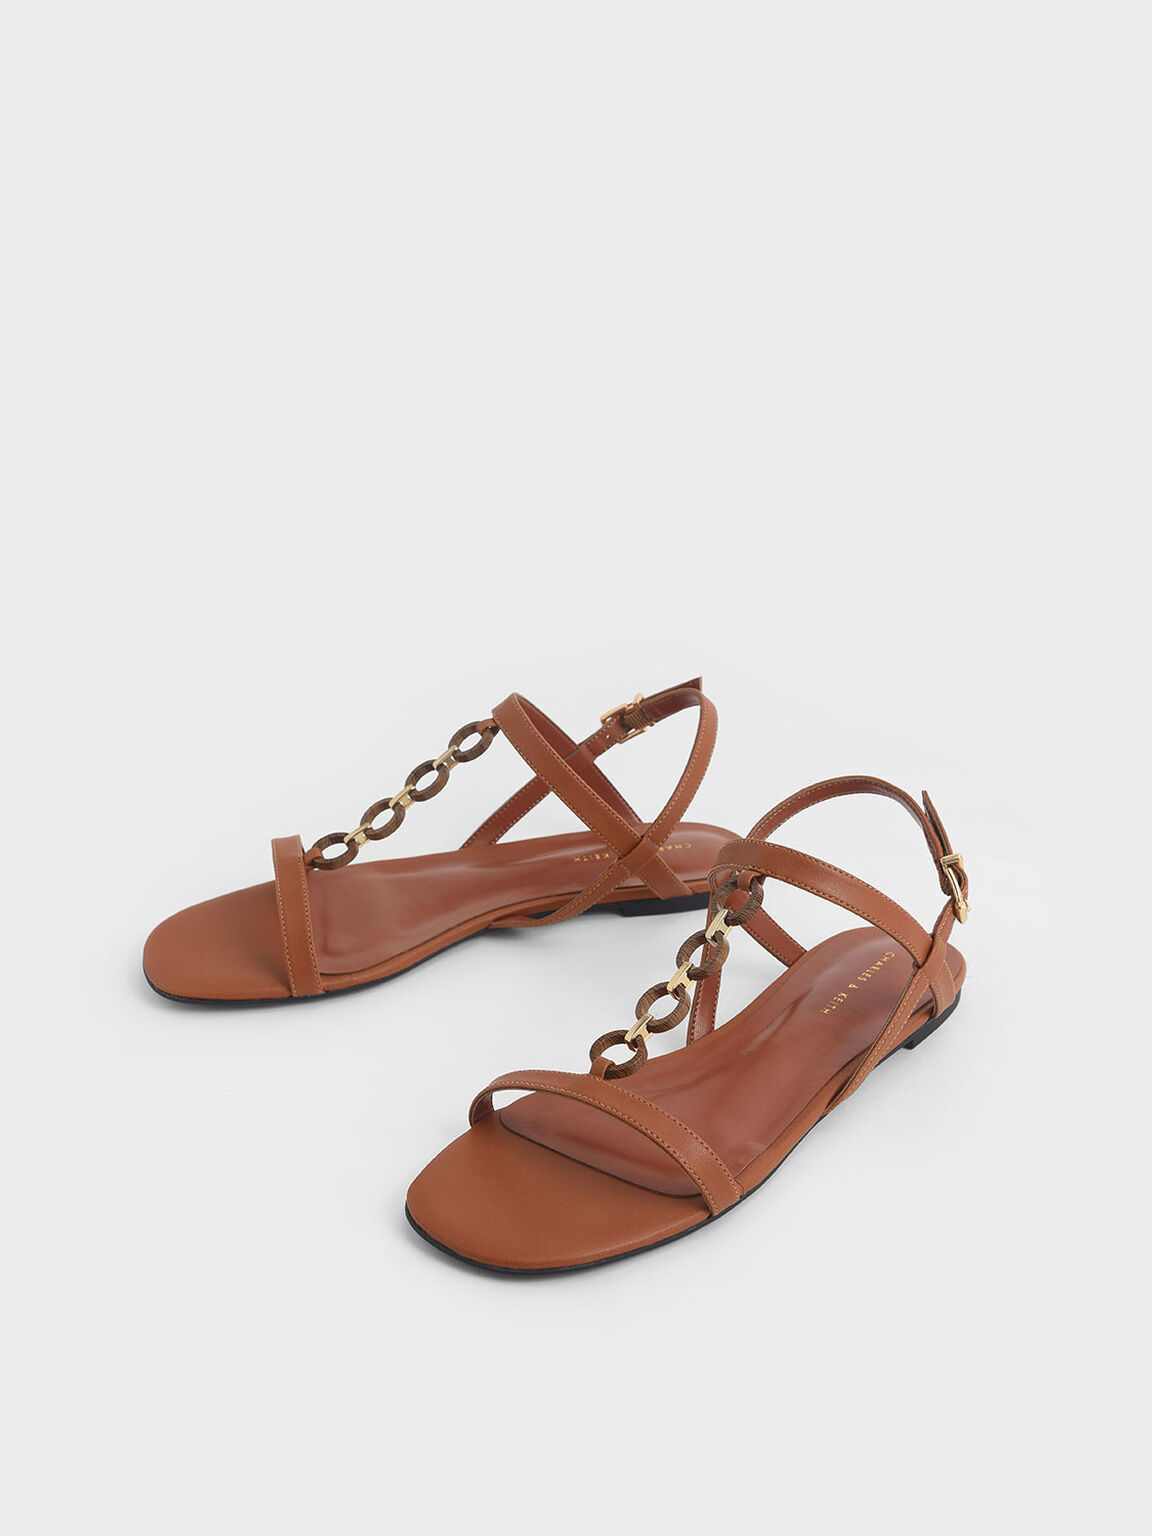 Wood-Effect Chain Link Sandals, Cognac, hi-res